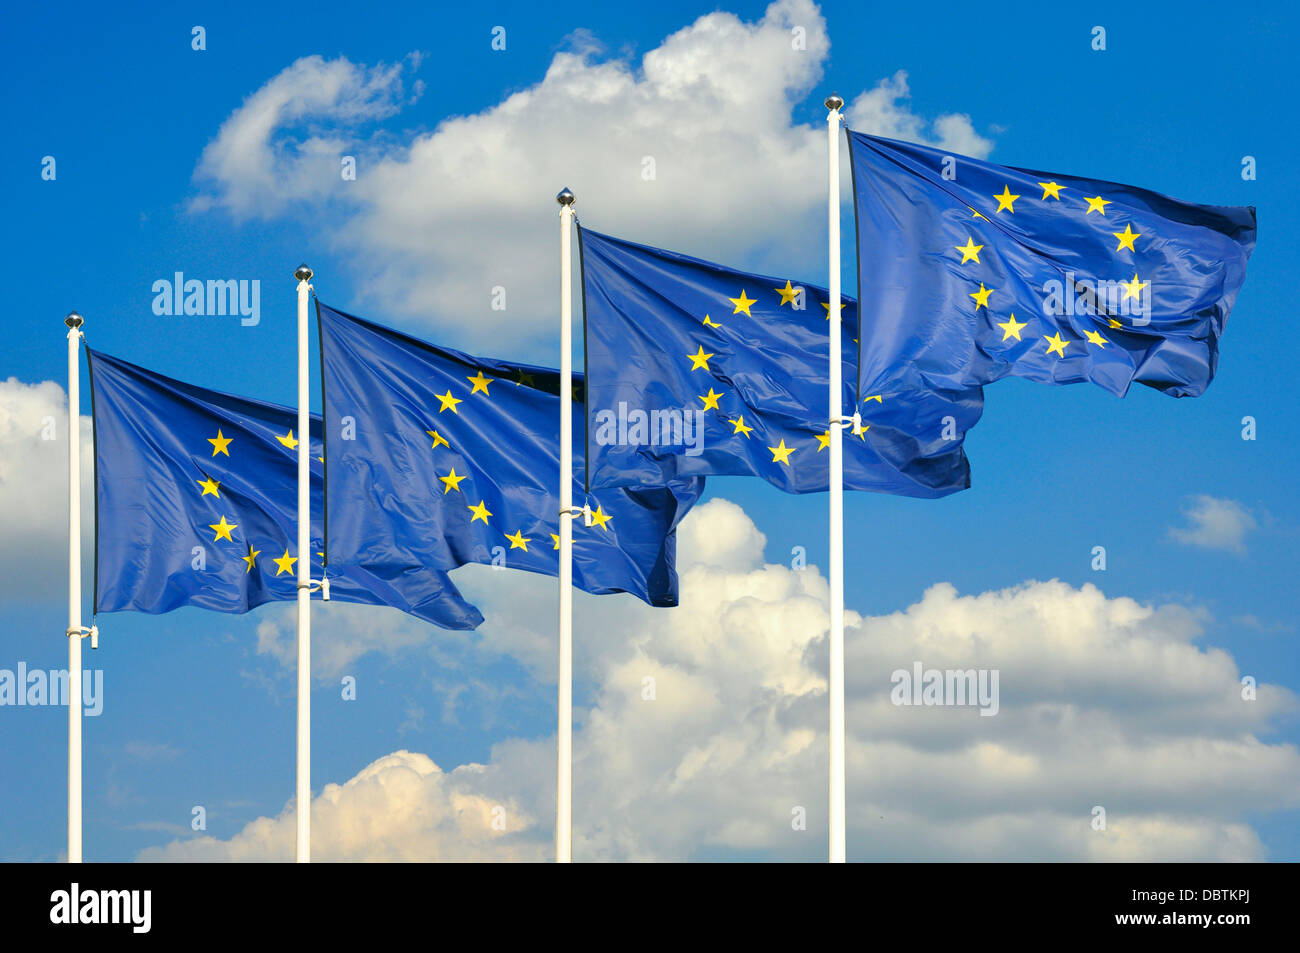 European Union flags over sky background - Stock Image